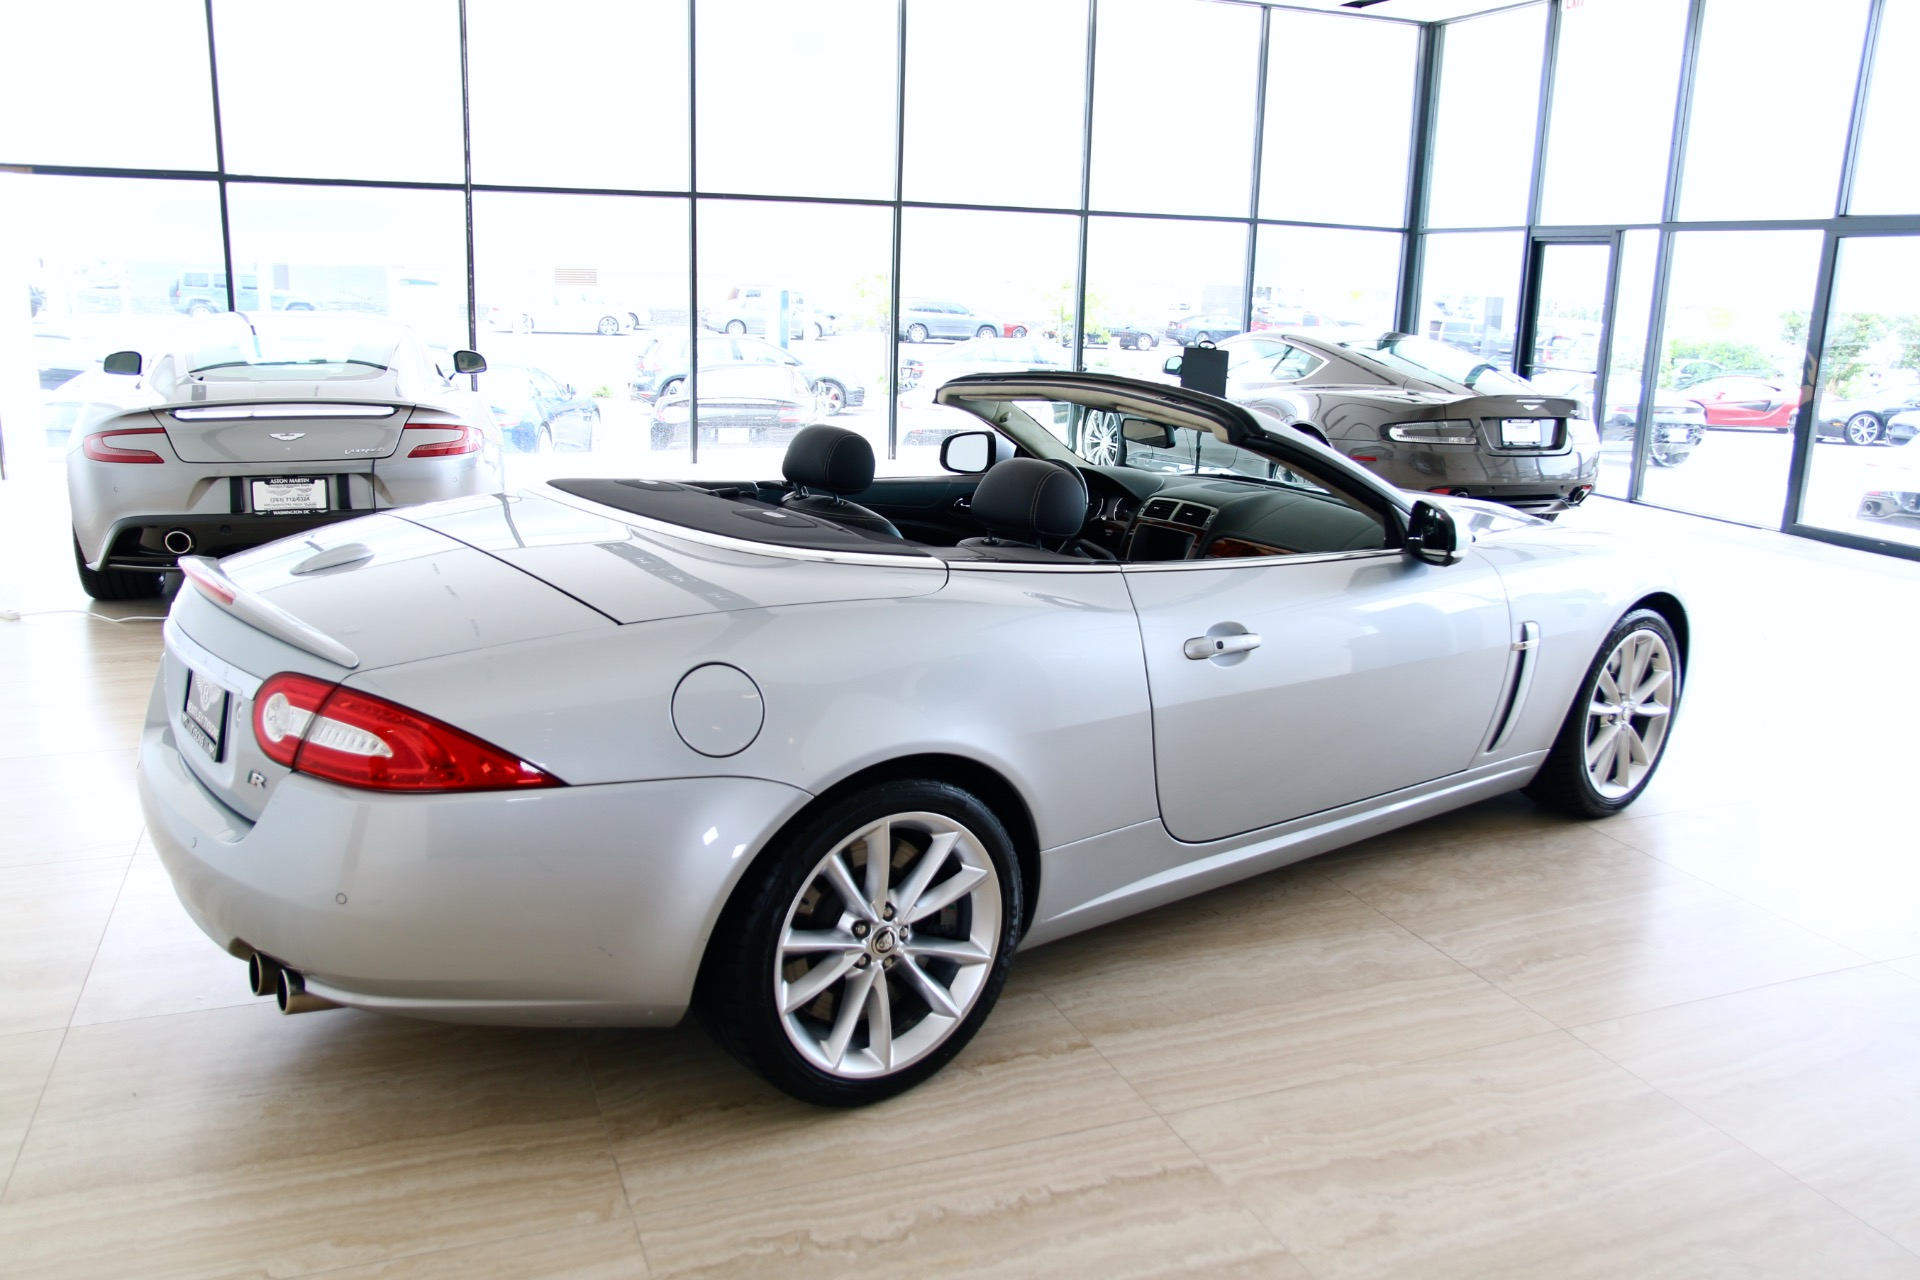 2011 jaguar xk xkr stock 6nb17365a for sale near vienna va va jaguar dealer for sale in. Black Bedroom Furniture Sets. Home Design Ideas